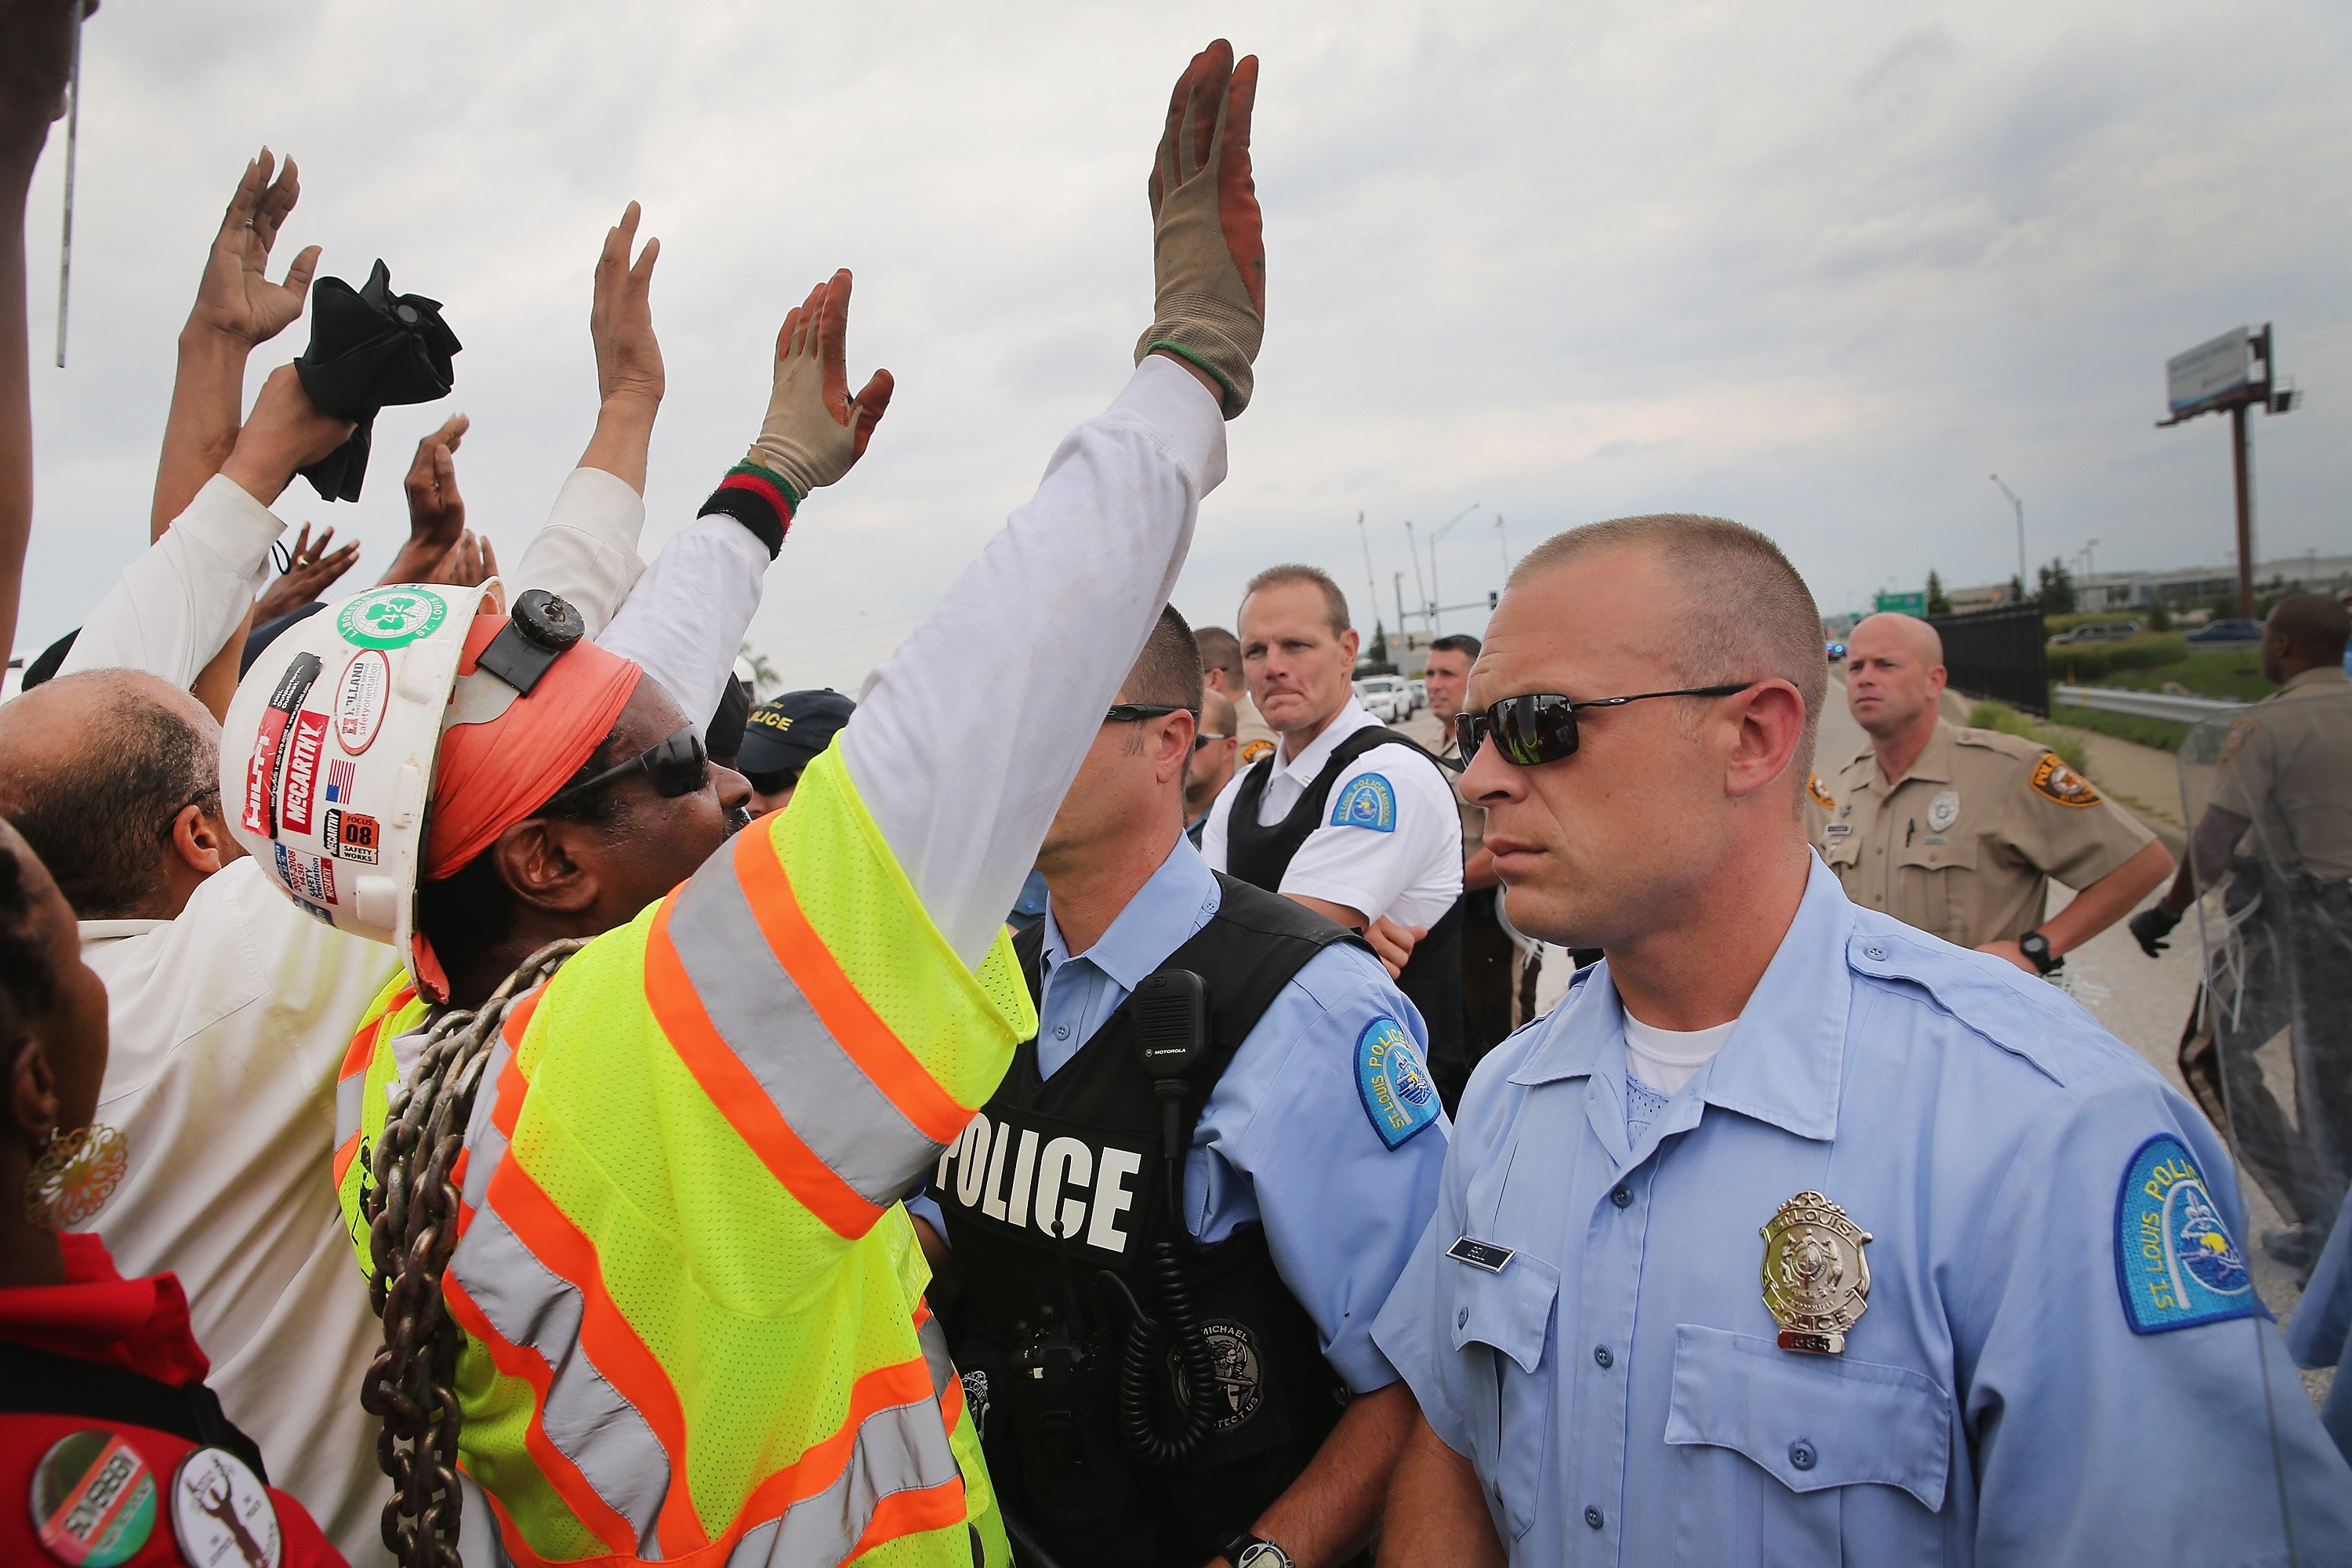 Police block demonstrators from gaining access to Interstate Highway 70 on Sept. 10, 2014 near Ferguson, Mo.